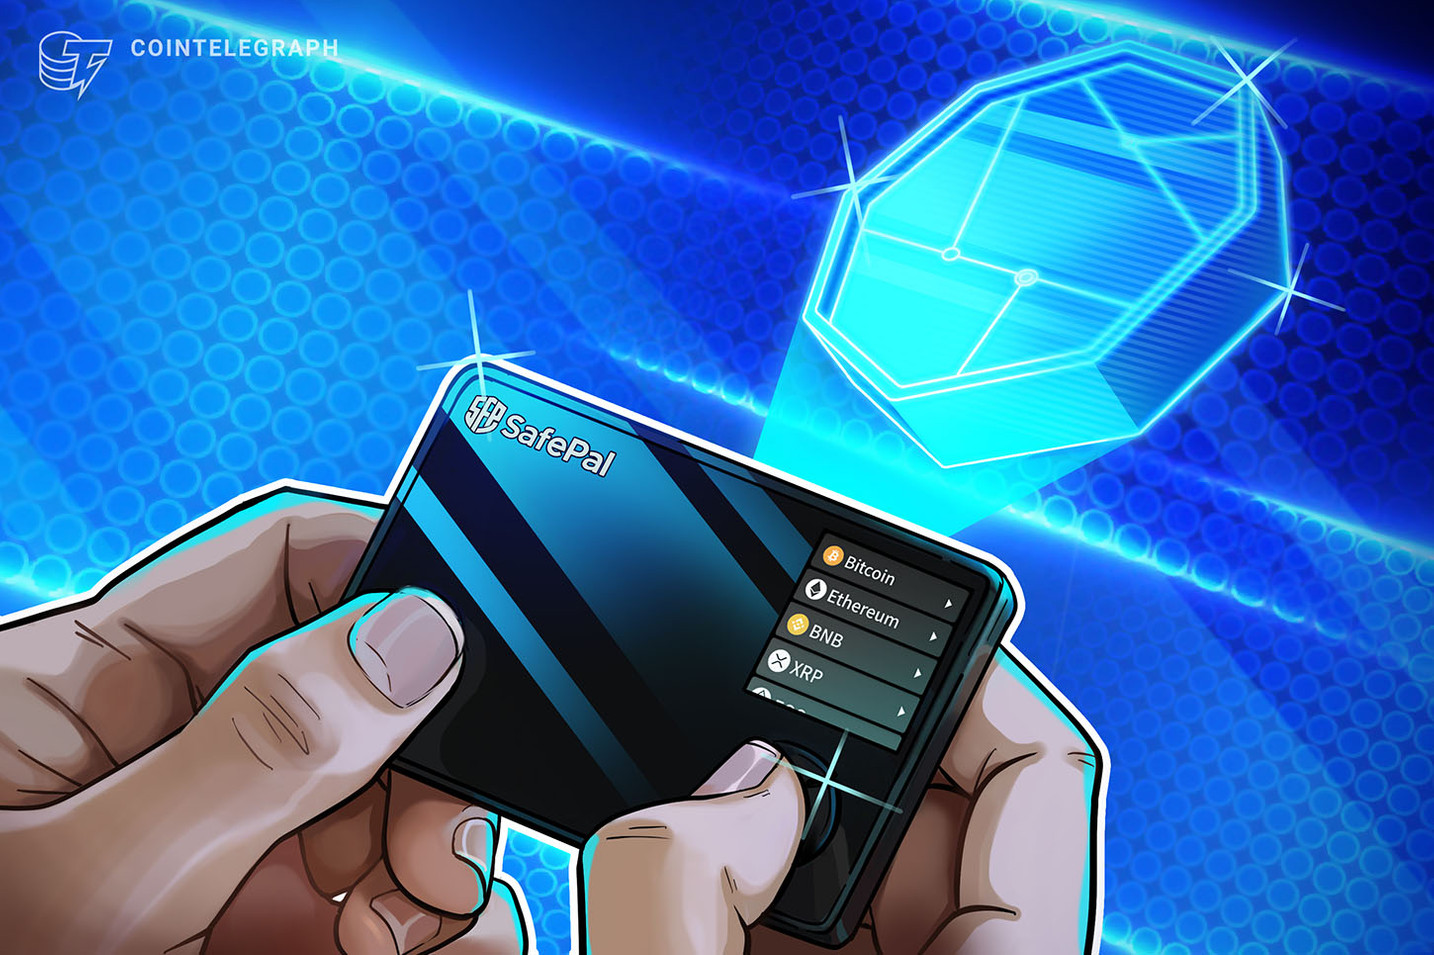 Binance-backed tokenized hardware wallet offers DeFi and NFT features